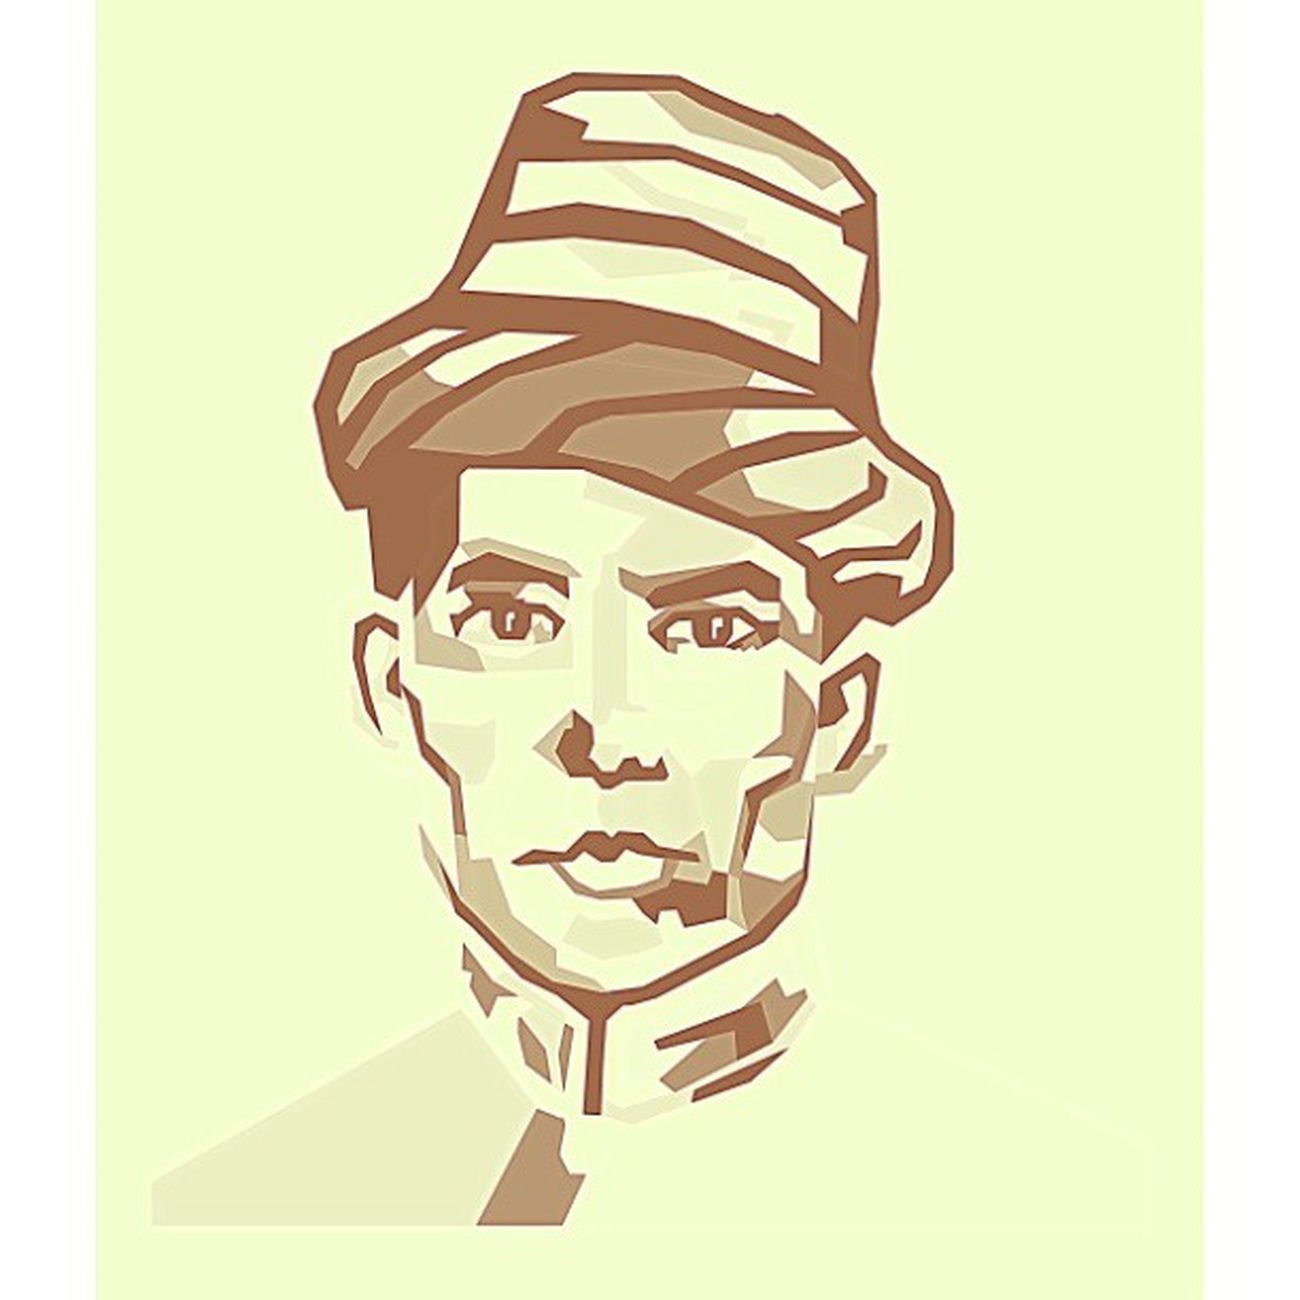 TeukuUmar Pahlawan Nasional Aceh Meulaboh CorelDraw Made by MySelf indonesia instanesia instagood instapict pictoftheday picture hero